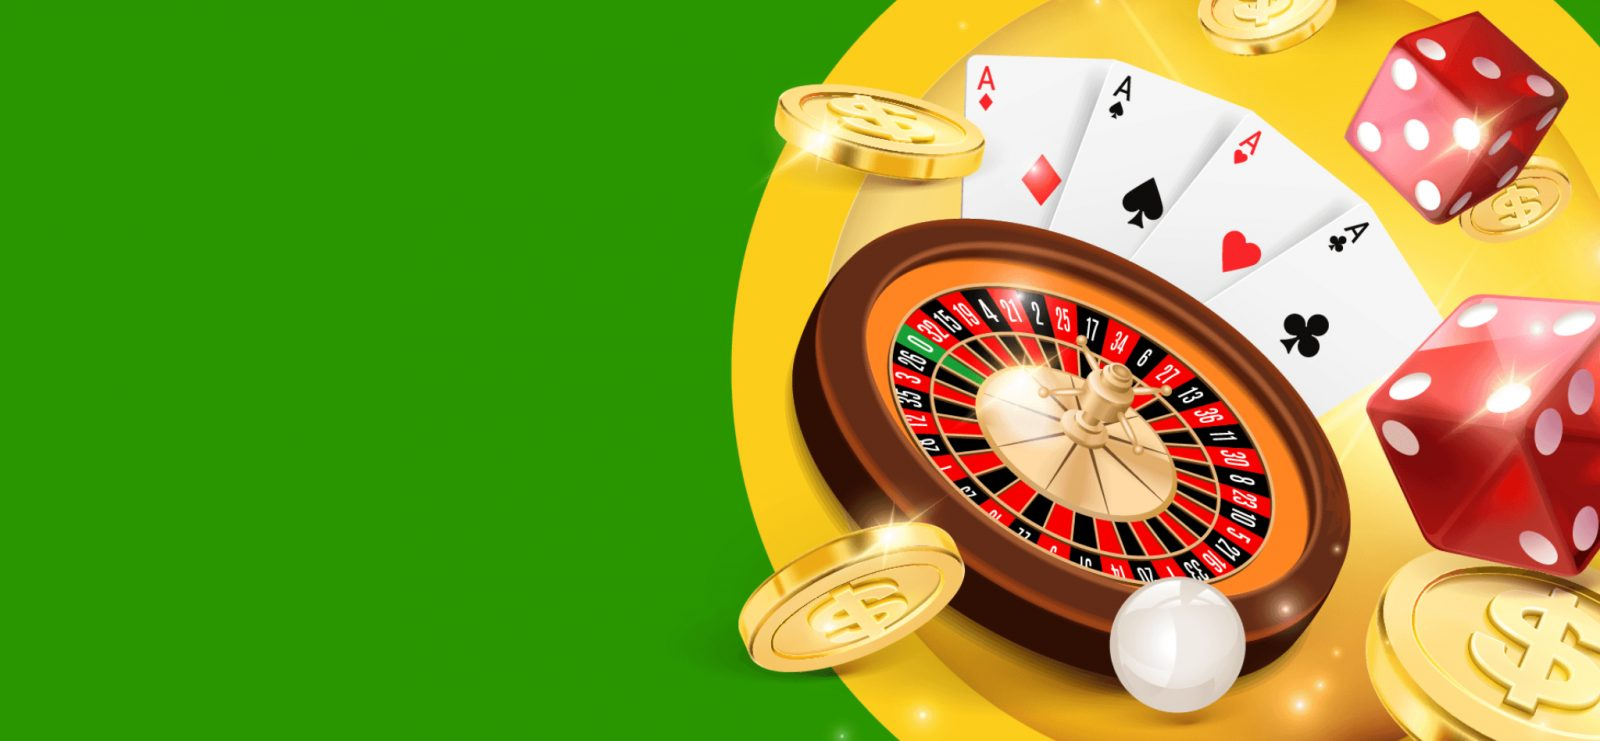 Playing Live at Joe's Online Casino